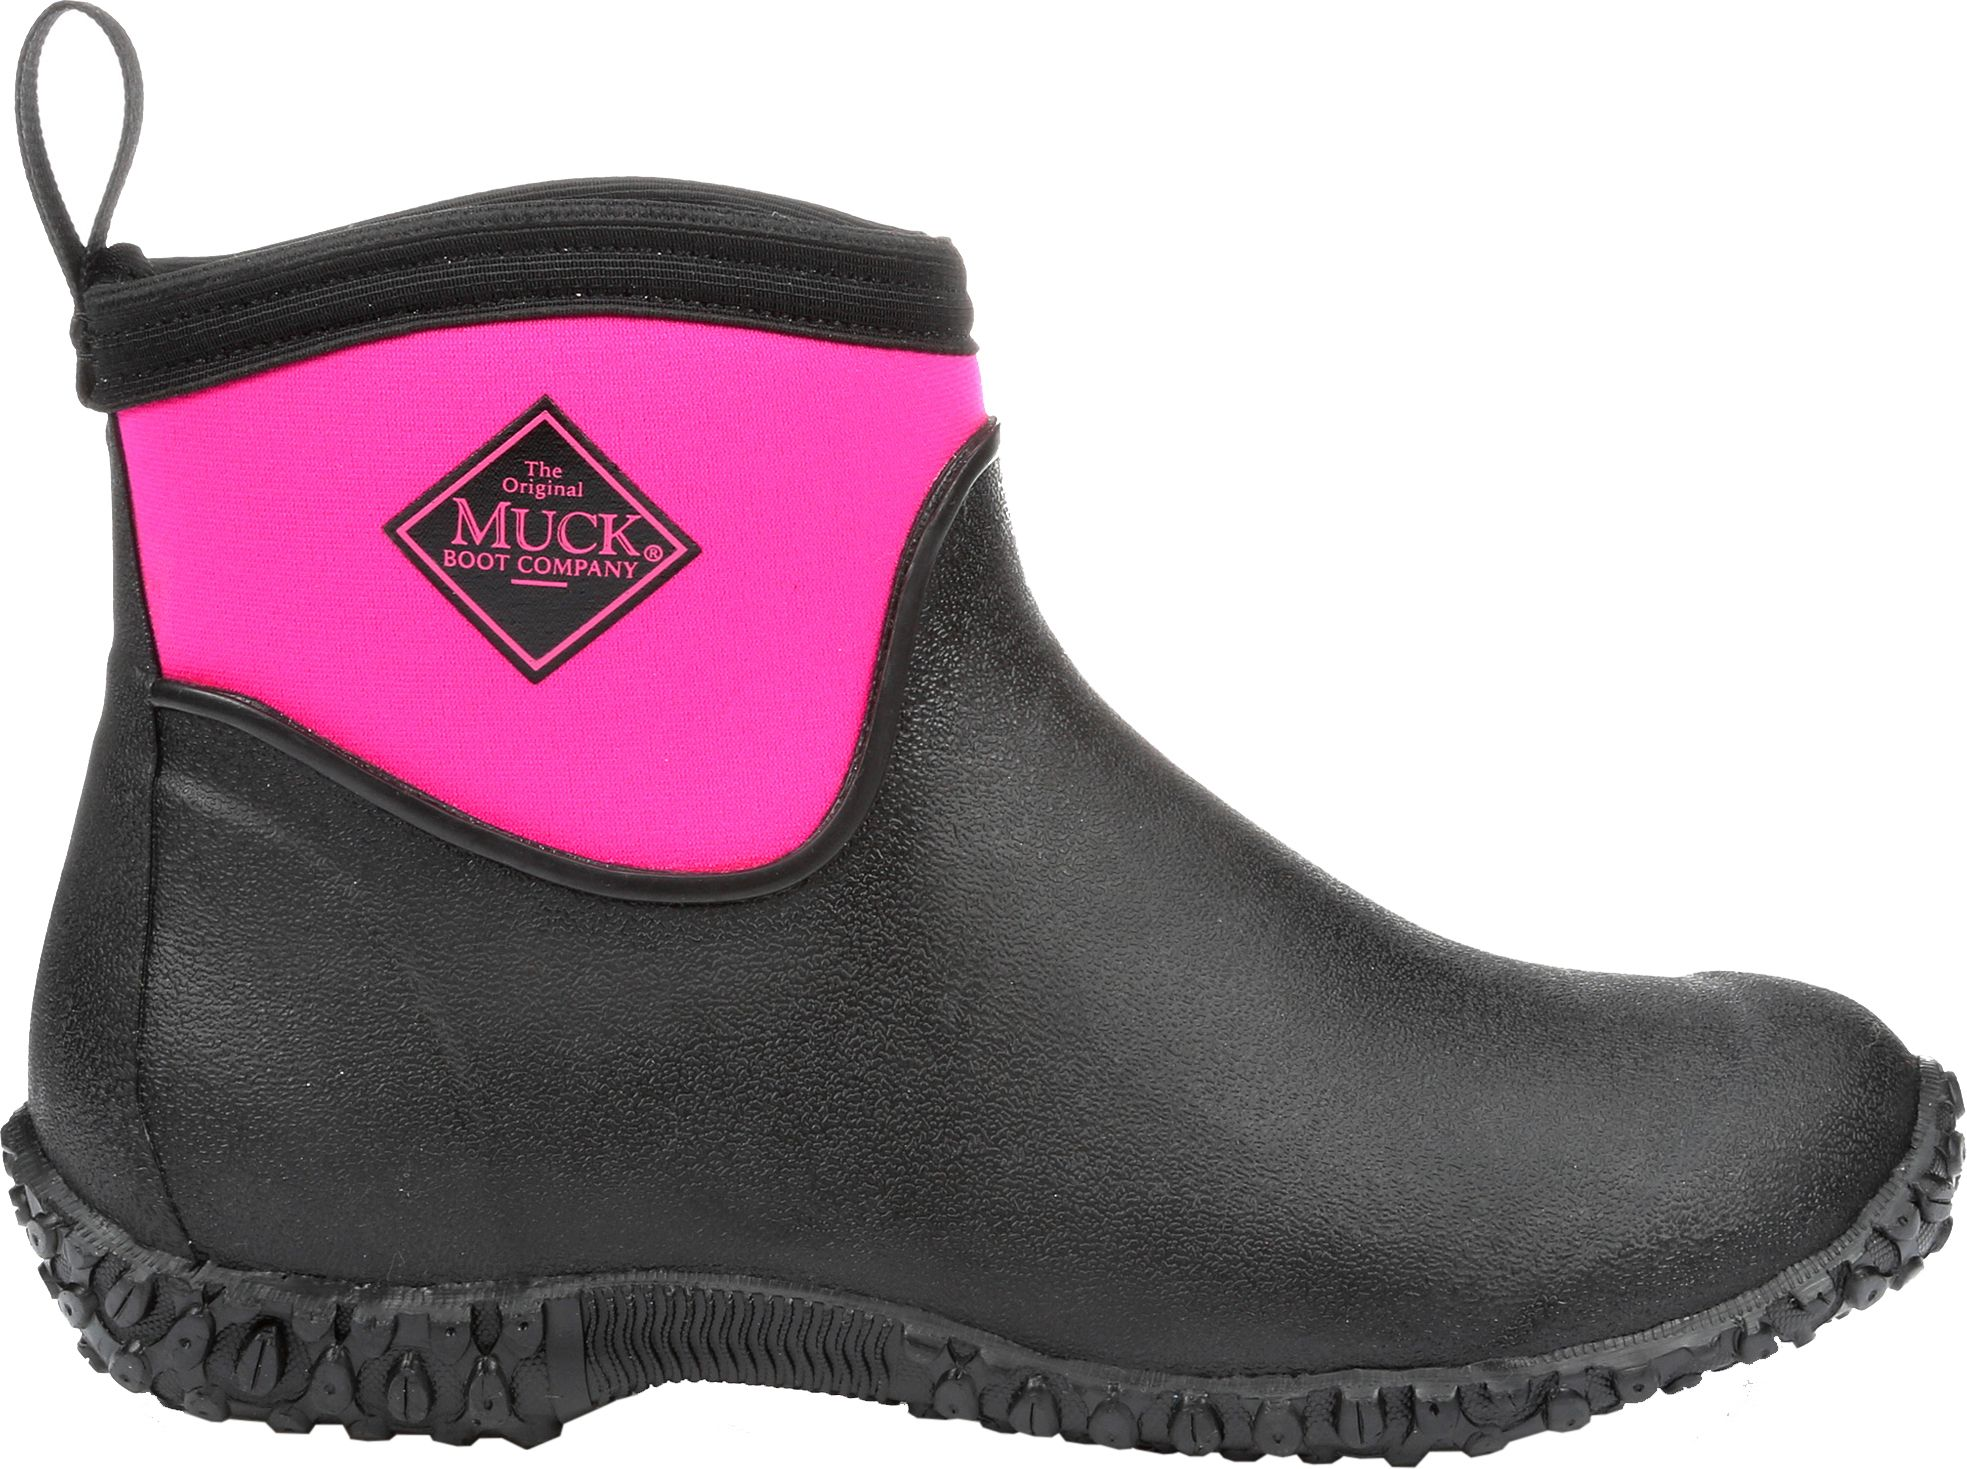 Muck Boot Women's Muckster II Ankle Rain Boots| DICK'S Sporting Goods